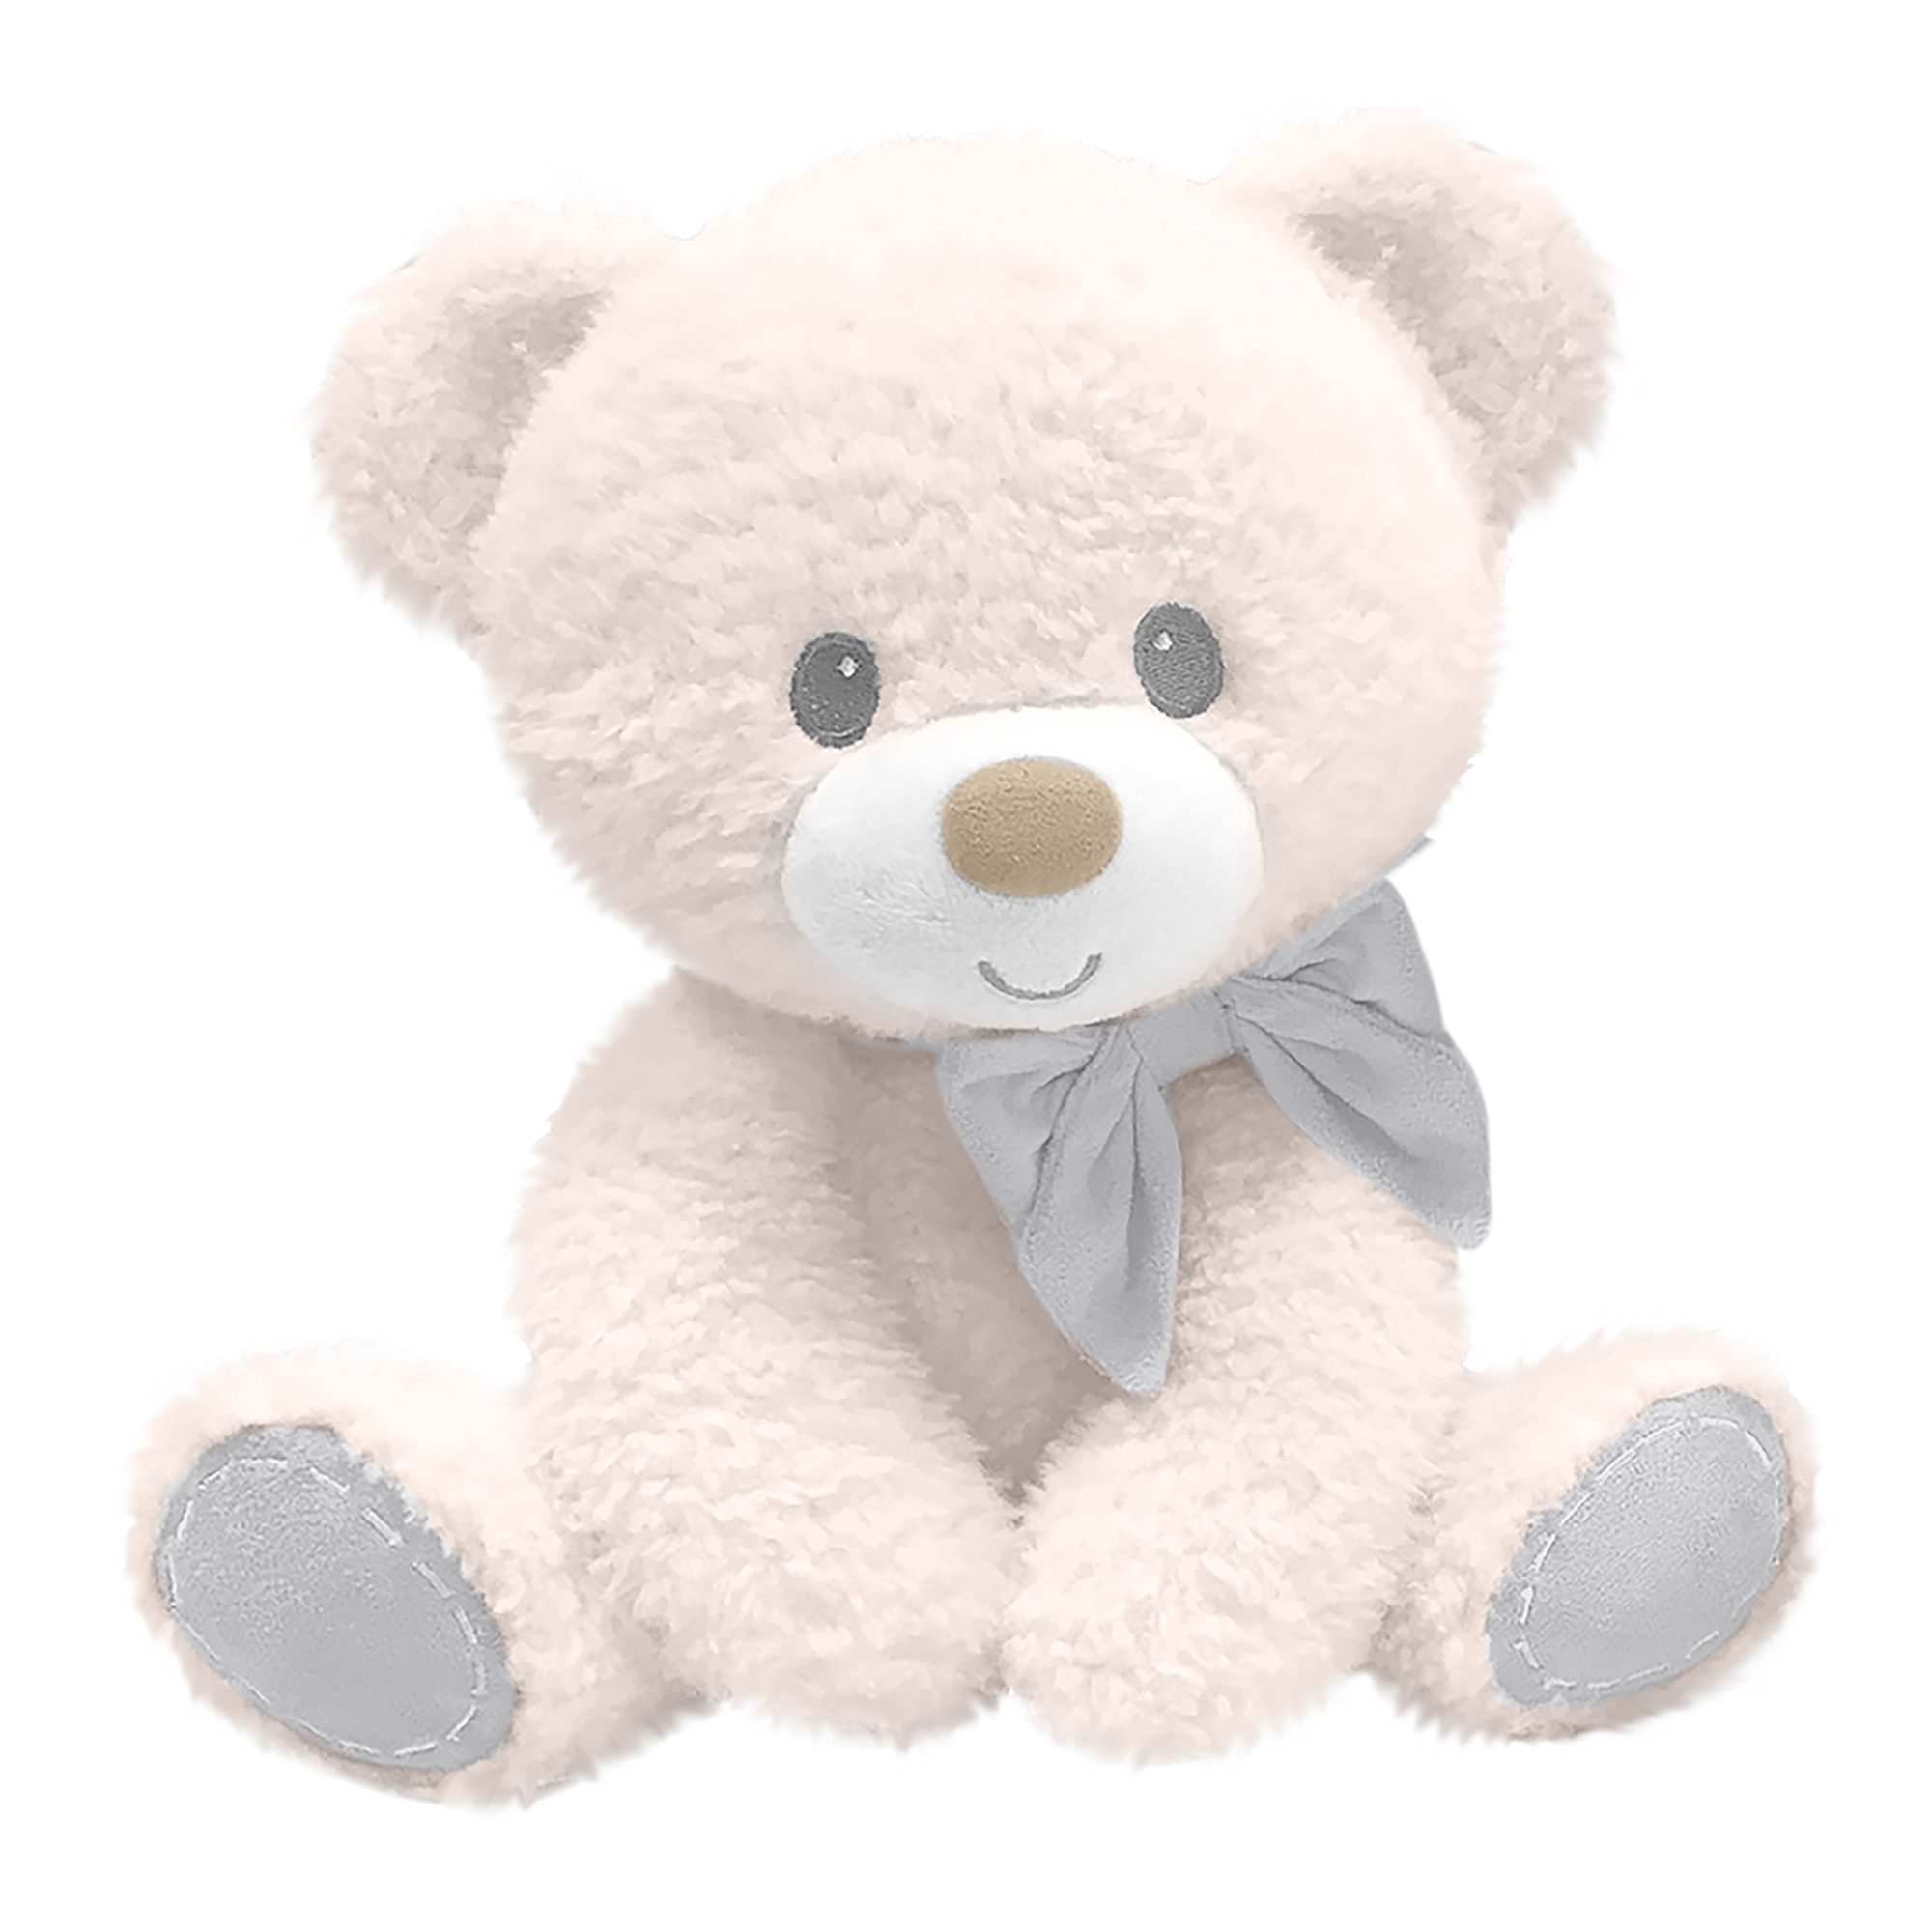 First and Main - Ivory Tumbles Bear Plush, 7 Inches